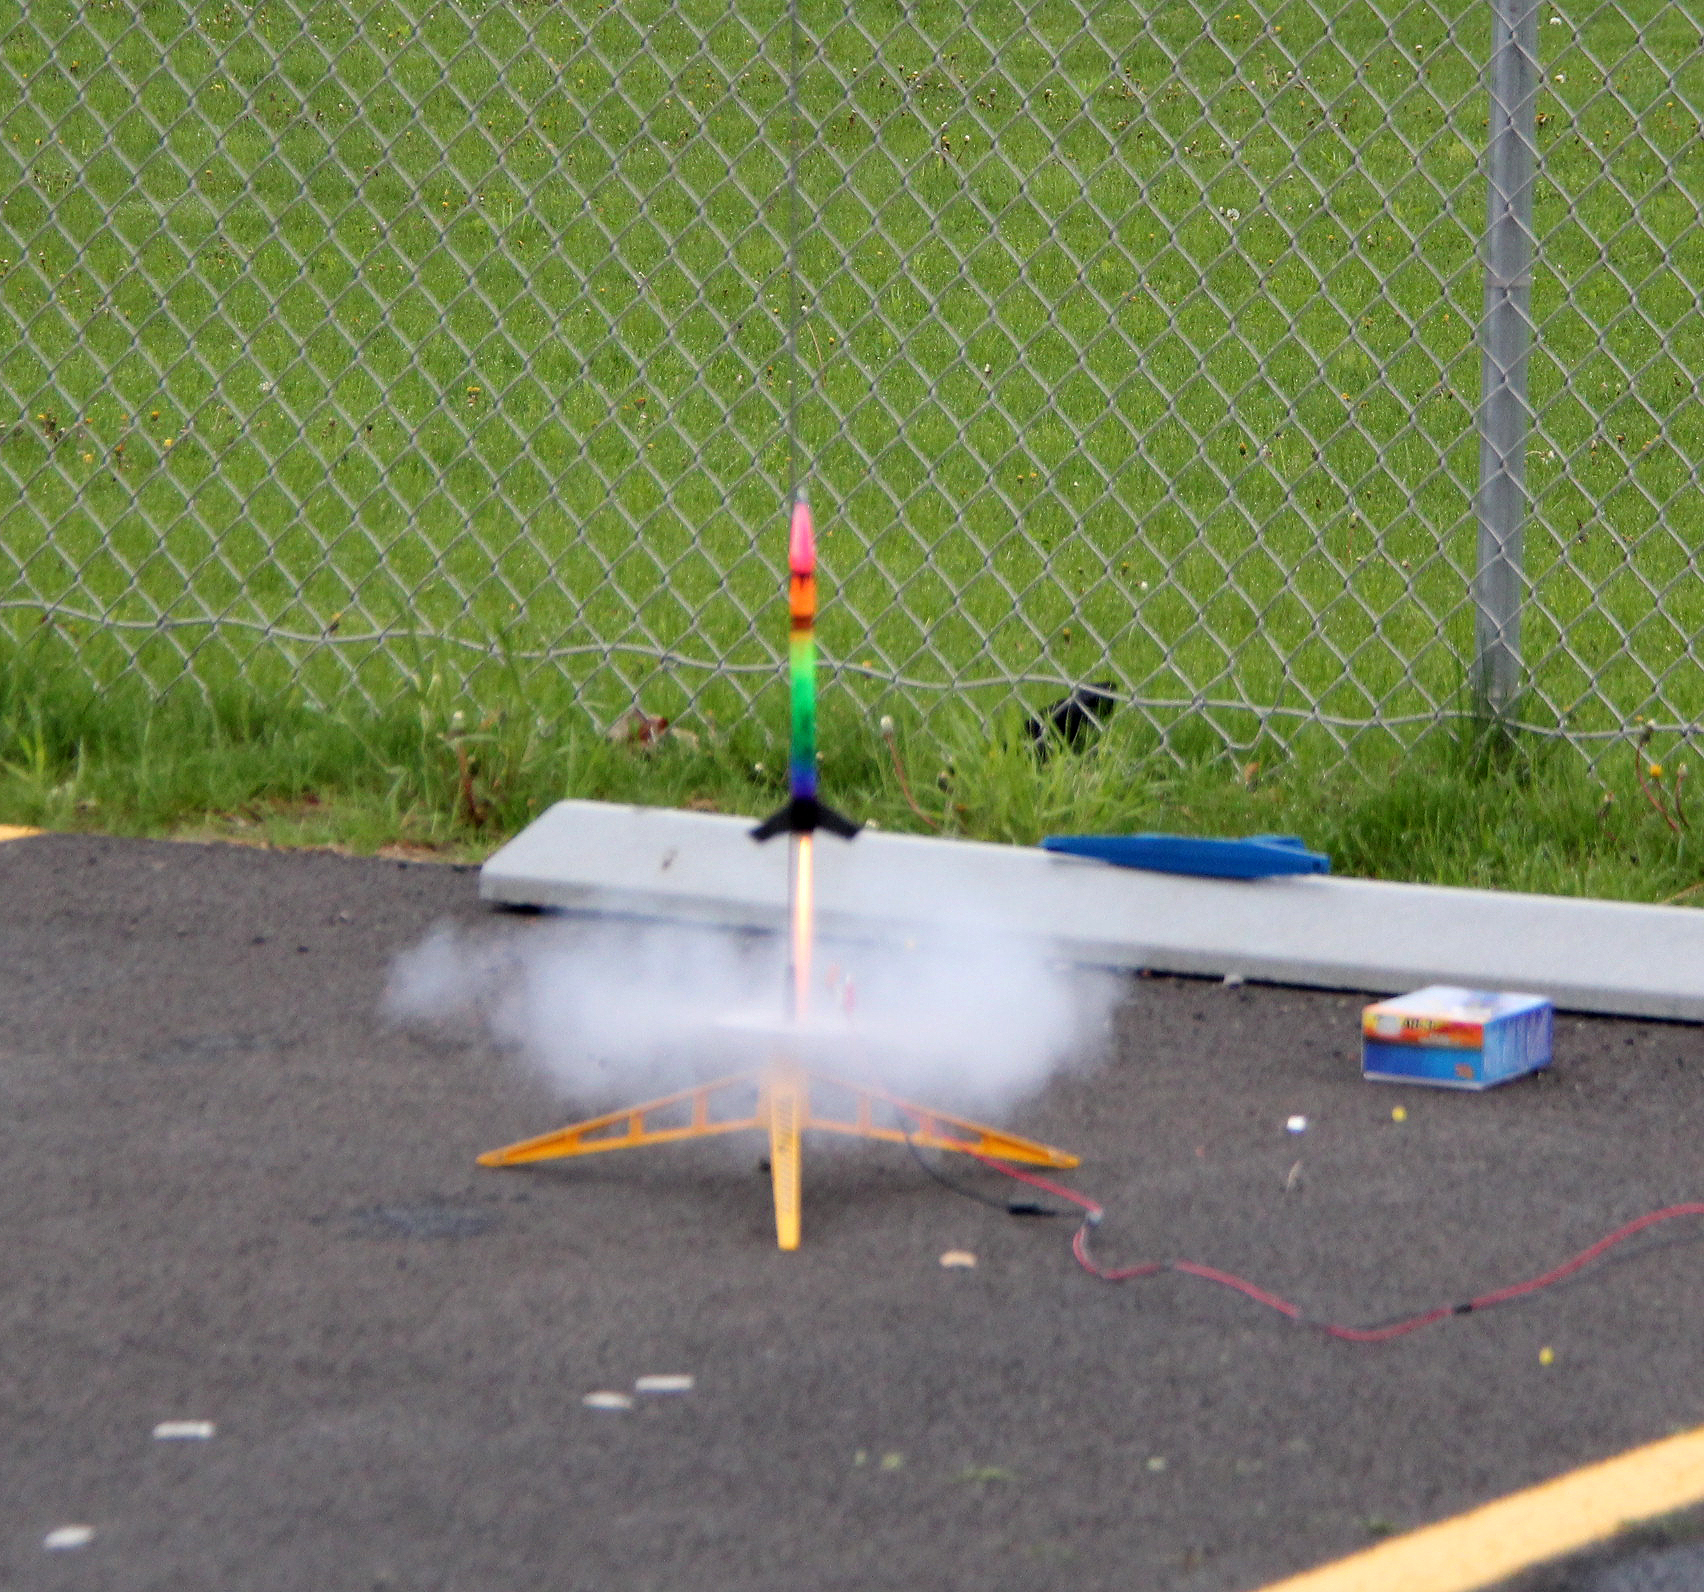 model rocket beginning to launch